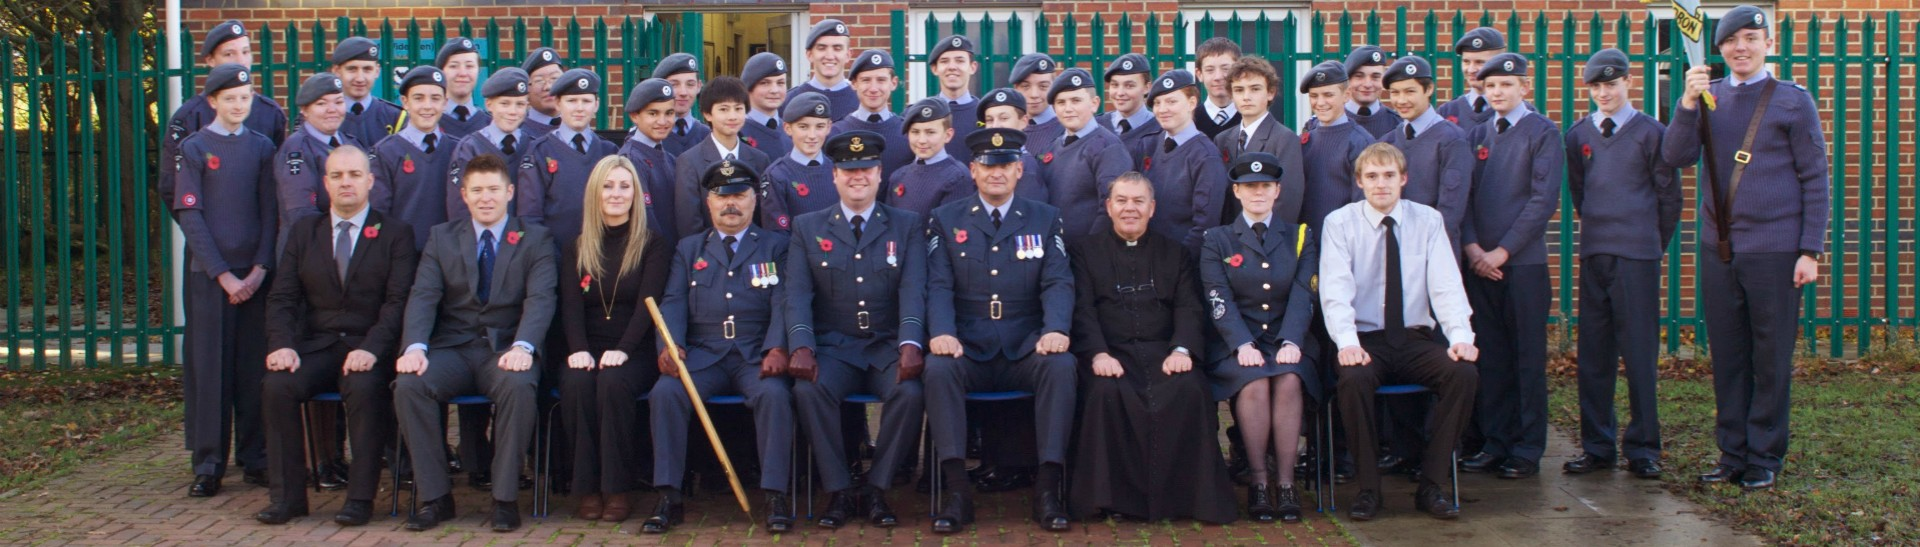 861 (Wideopen) Squadron Air Cadets